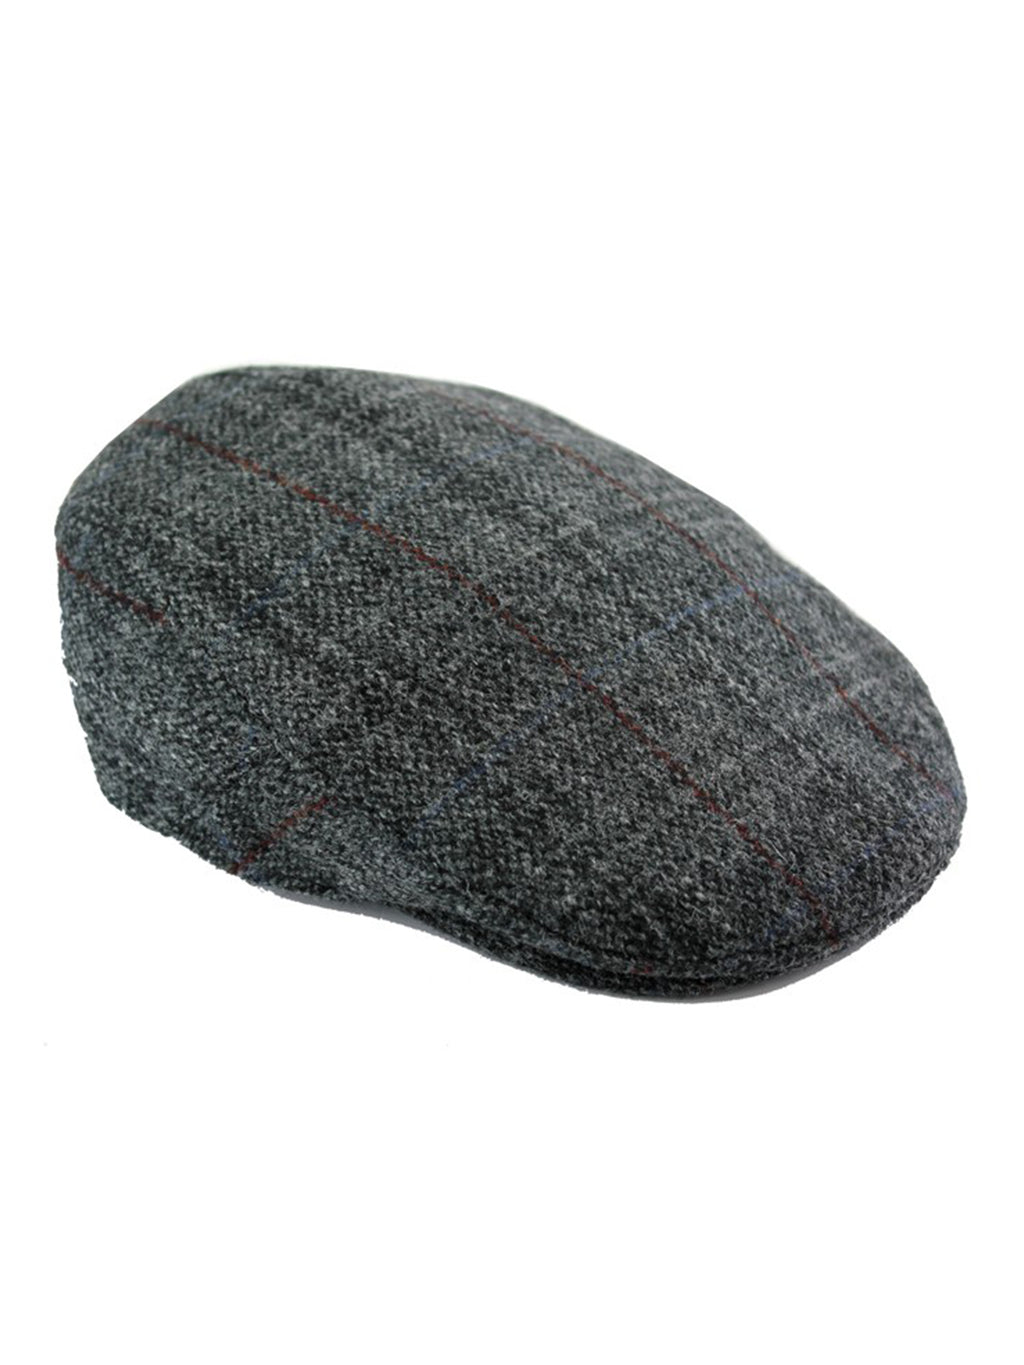 Grey Harris Tweed Flat Cap